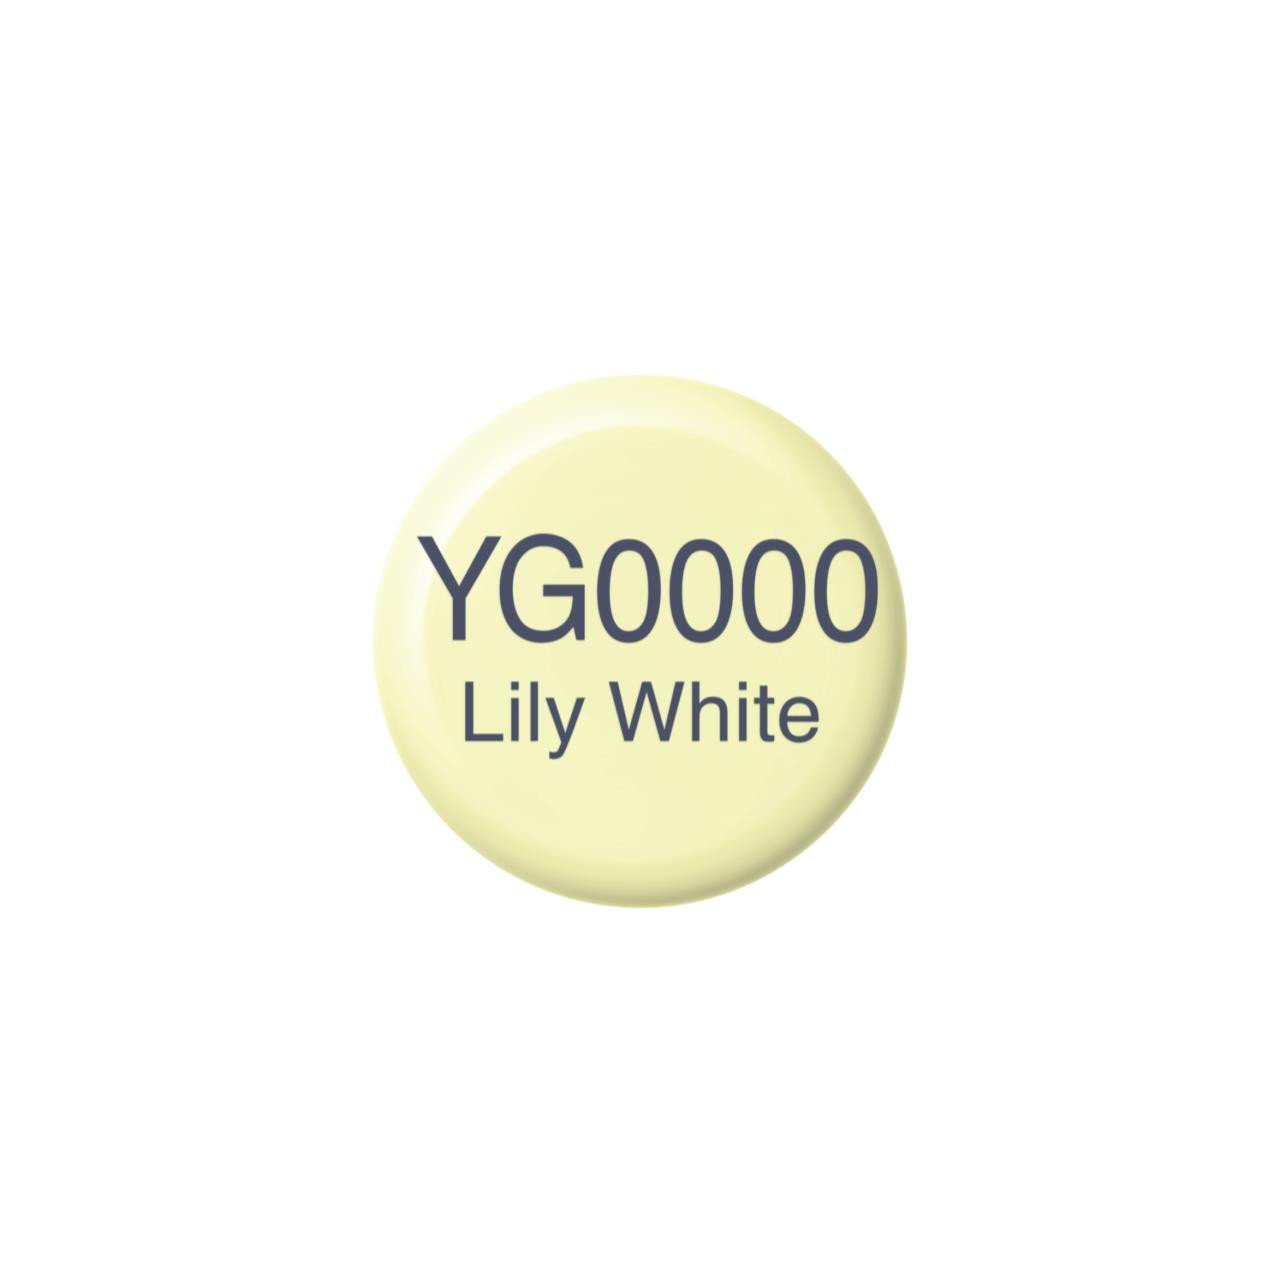 YG0000 Lily White, Copic Ink - 4511338058336